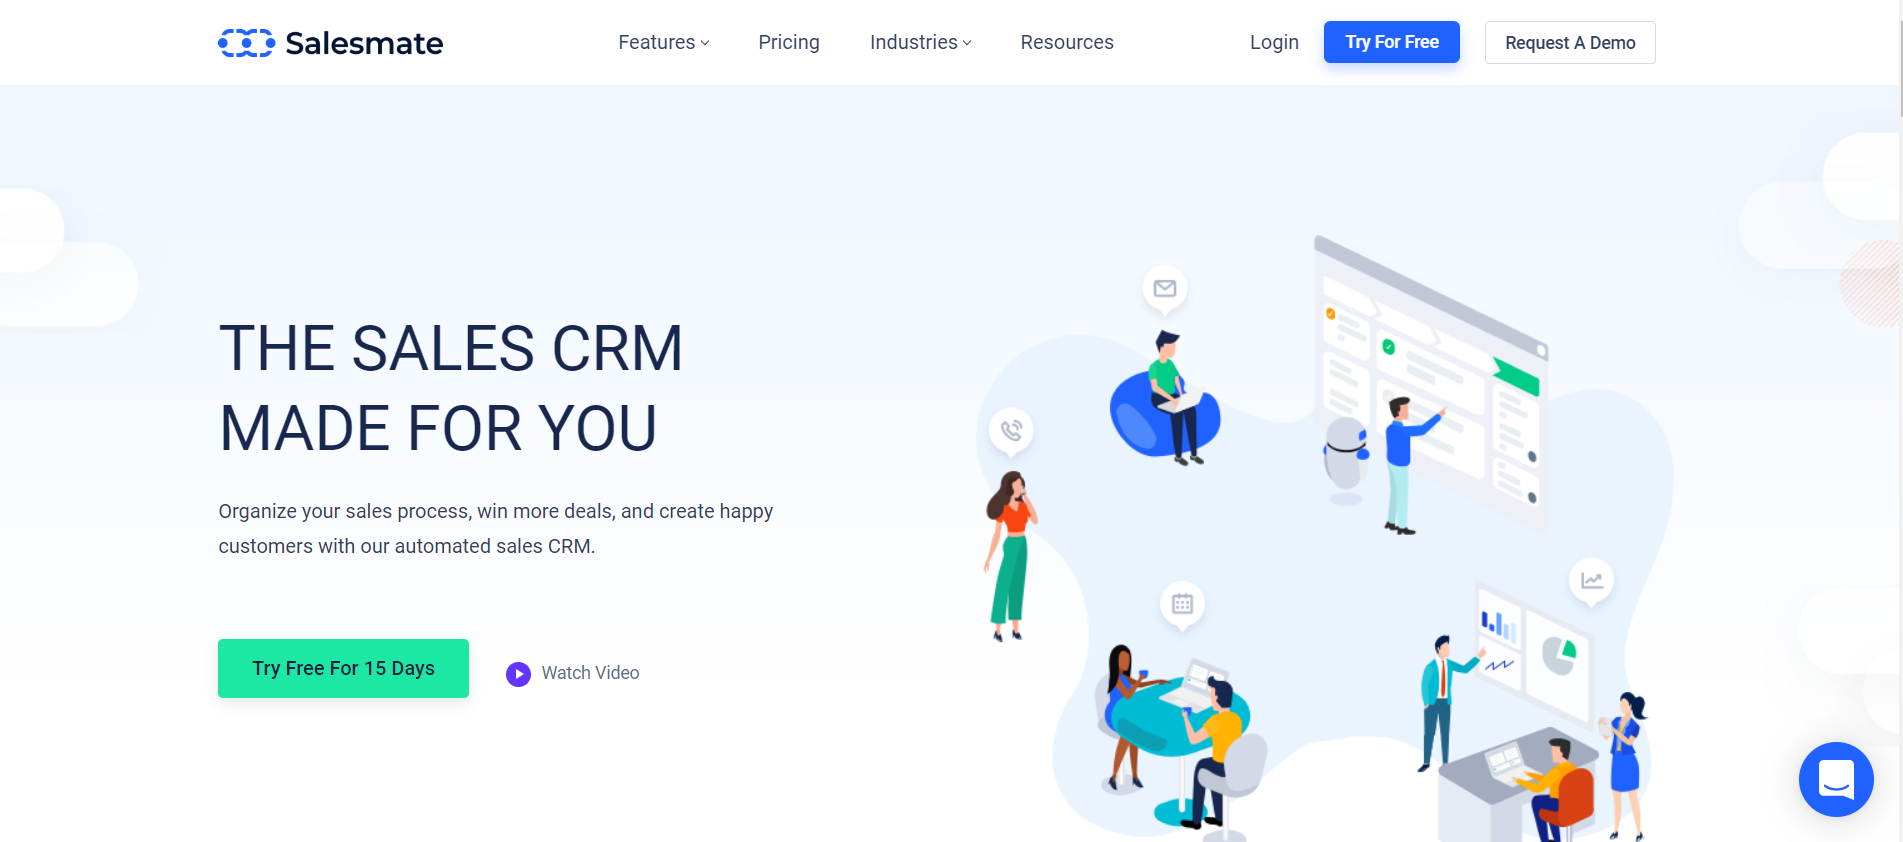 Salesmate as best crm tools for manager